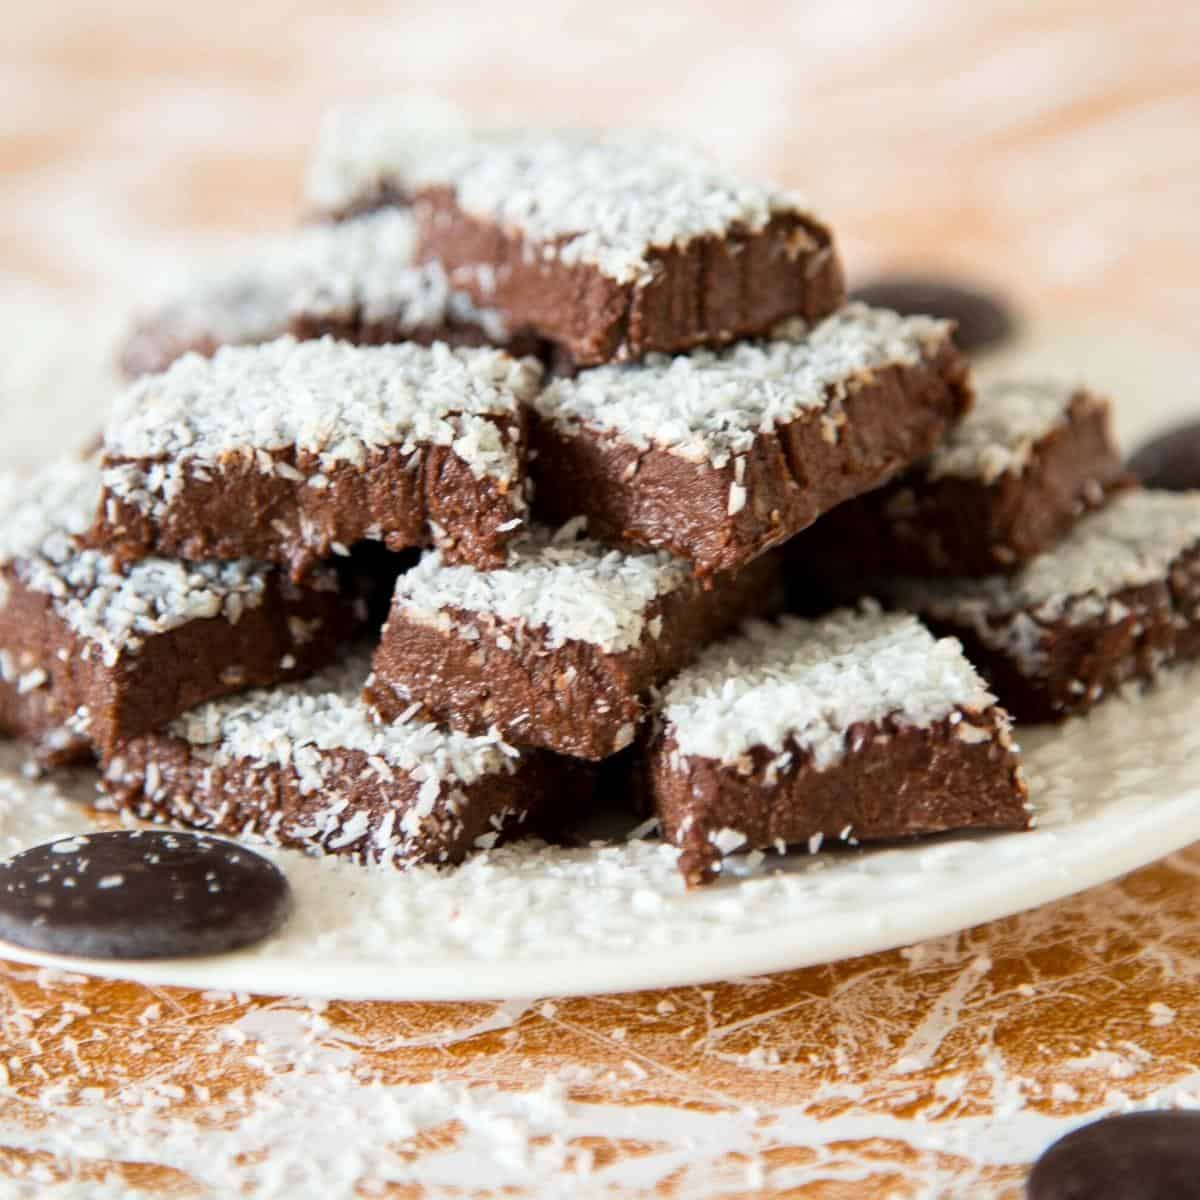 A stack of fudge on a plate